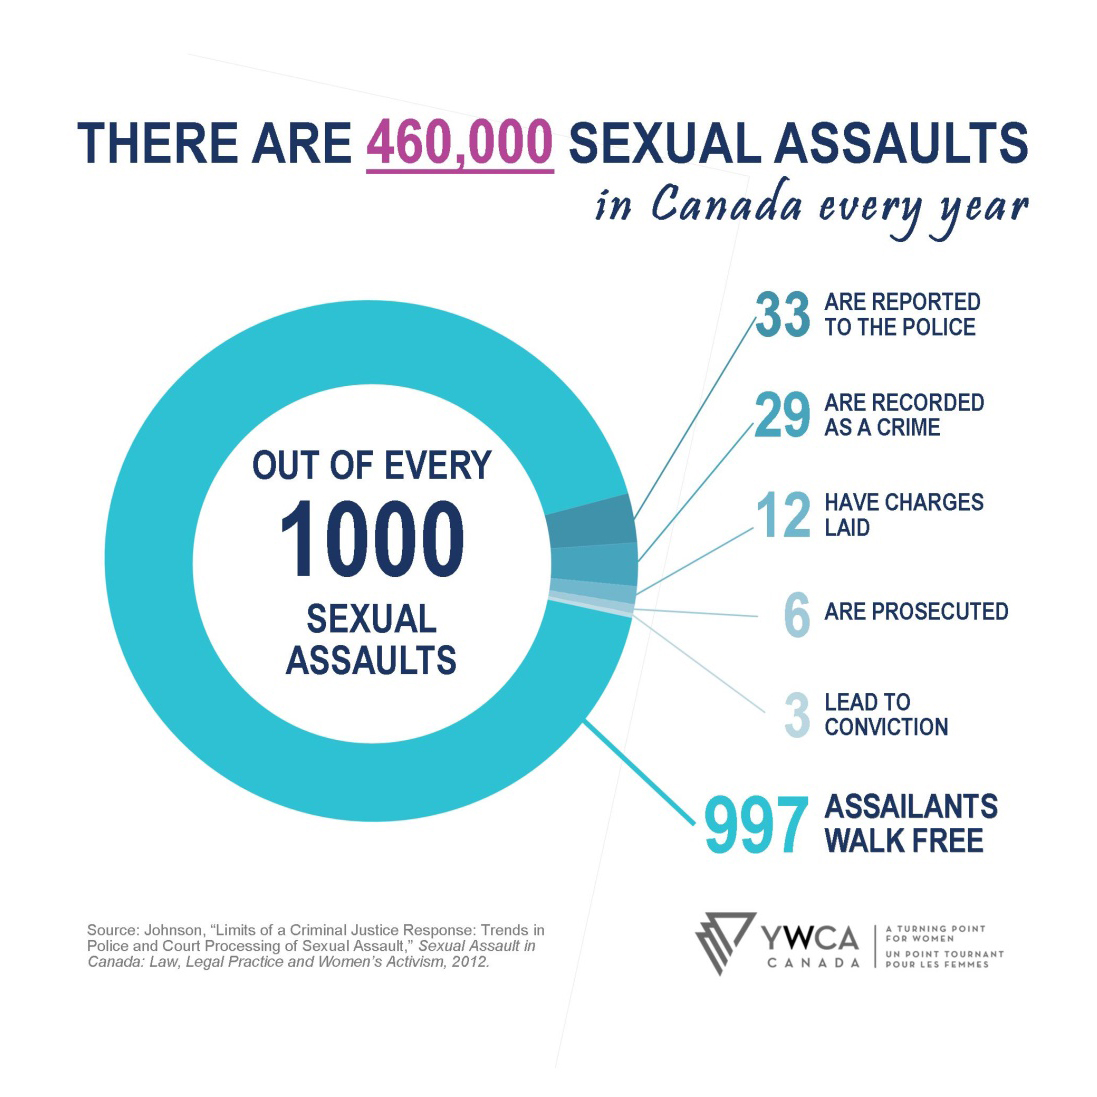 there are 460,000 sexual assaults in Canada every year